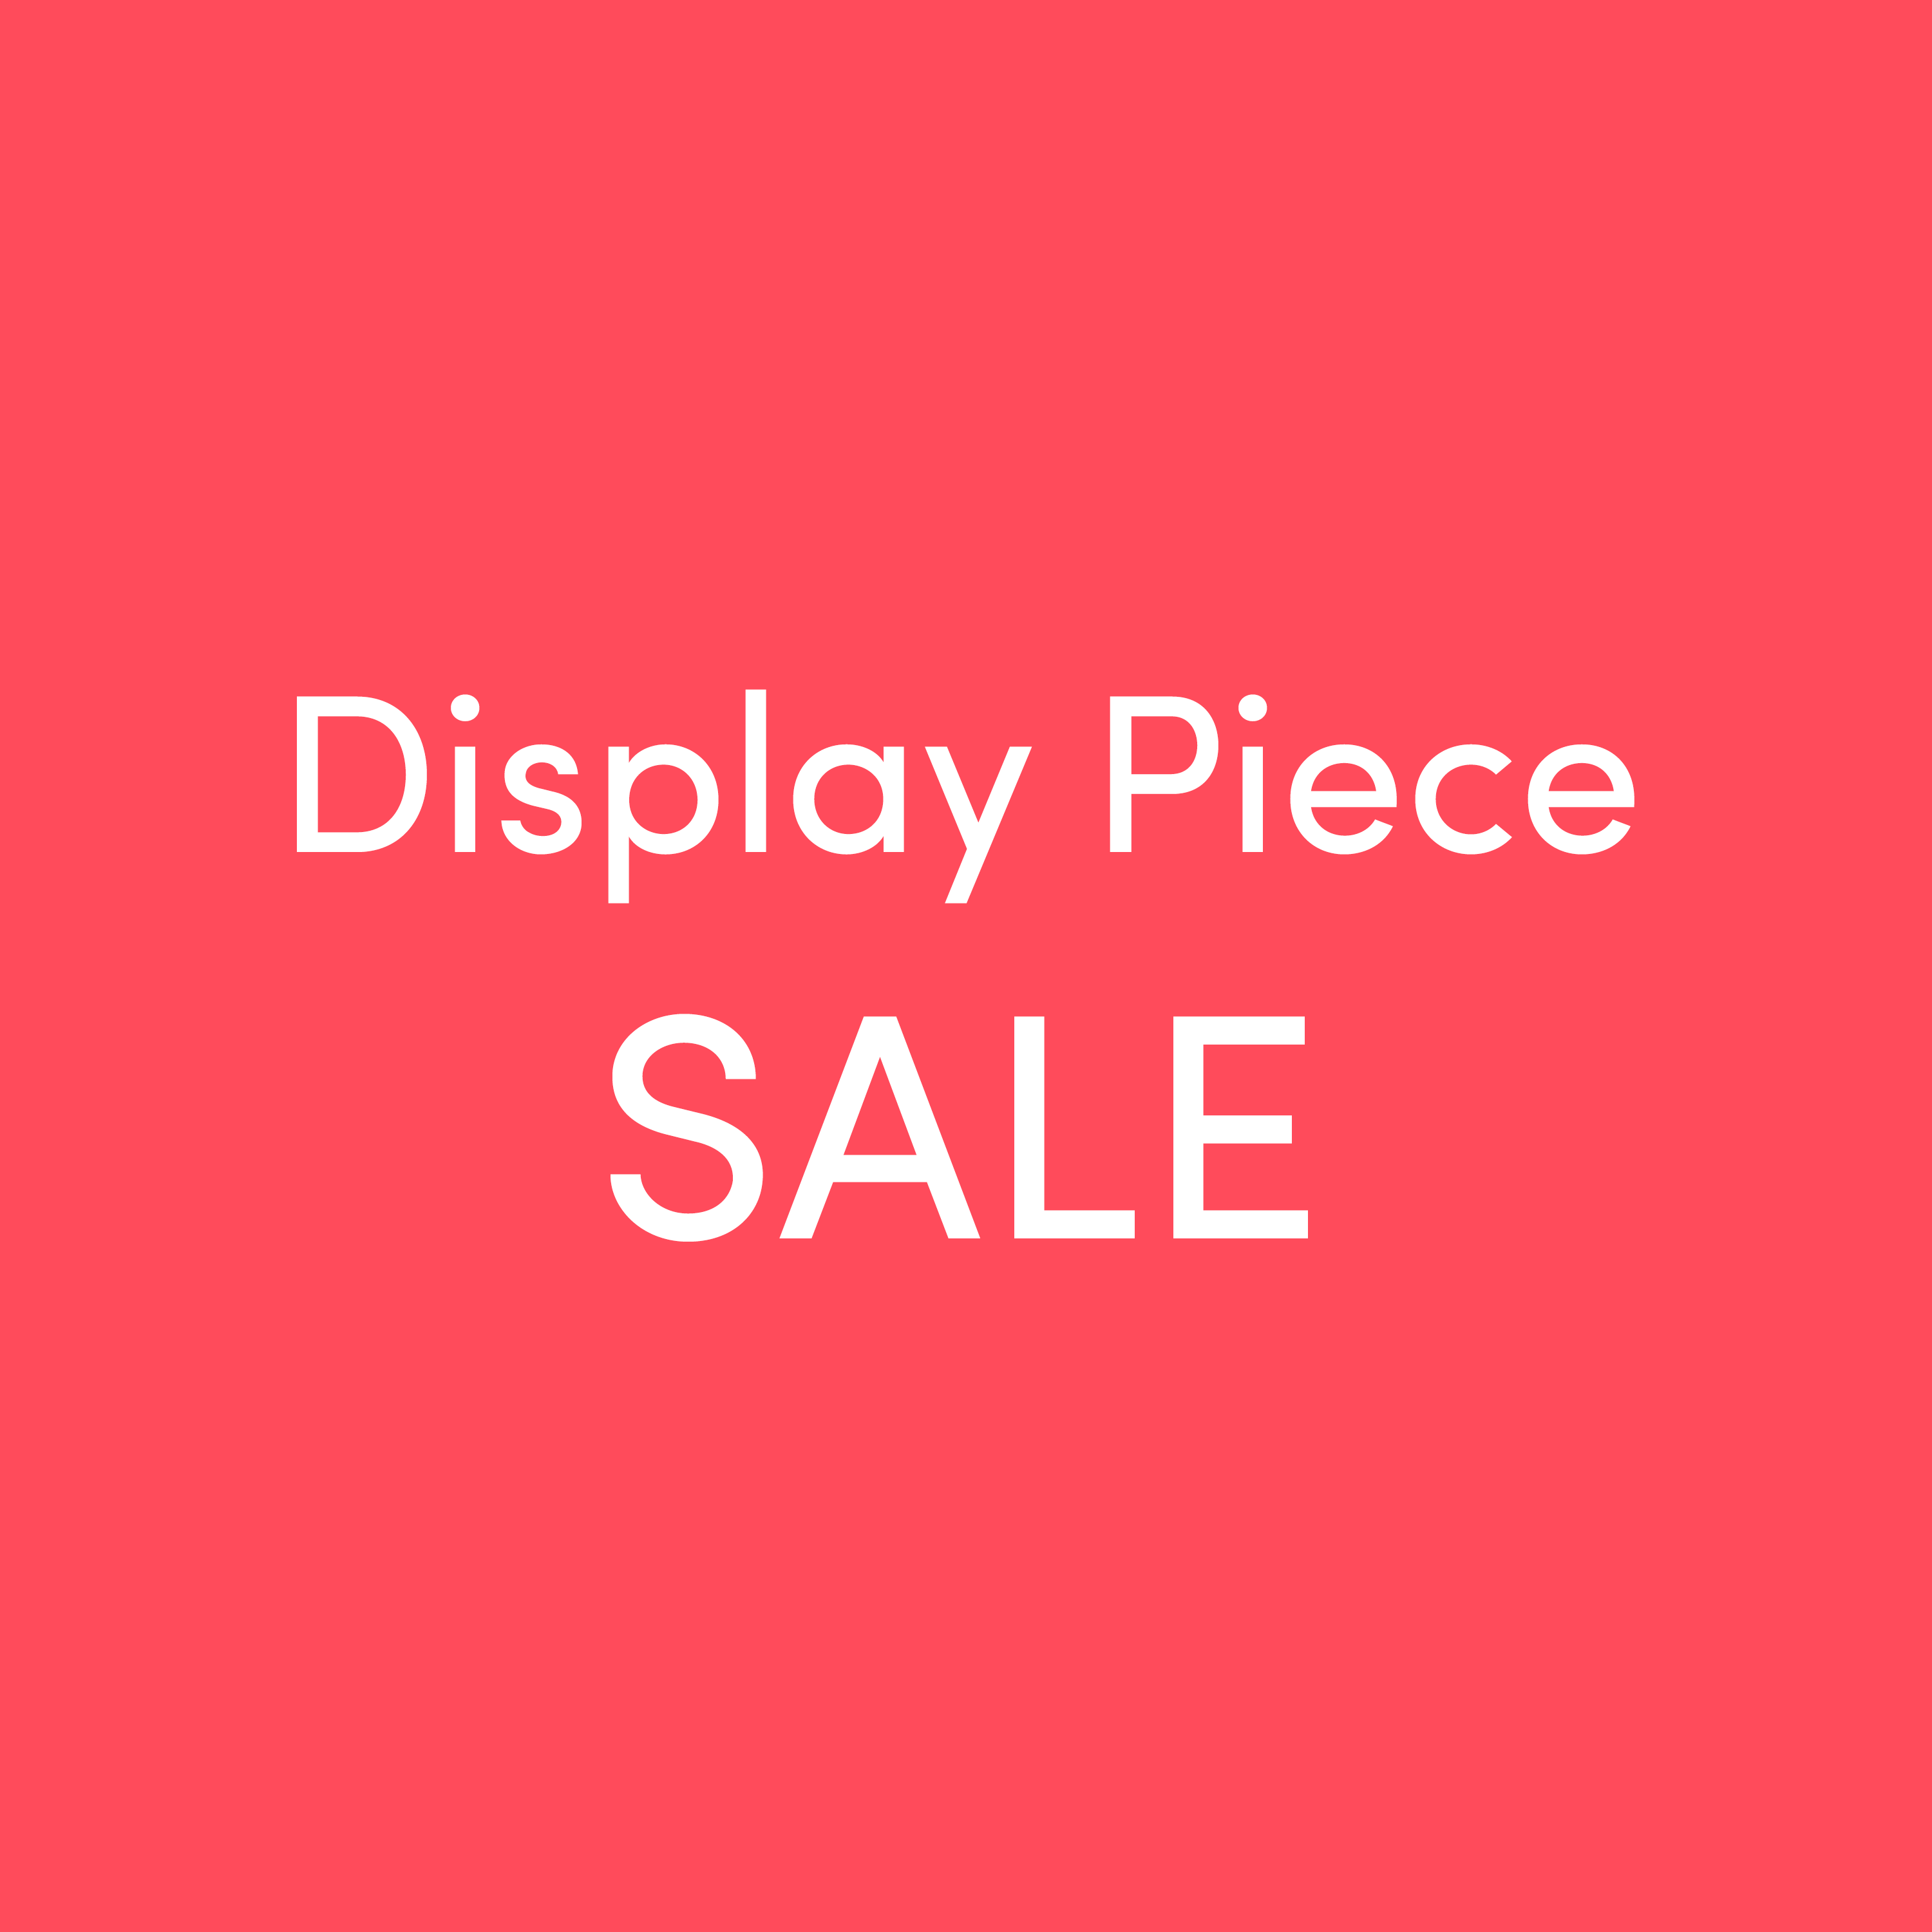 Display Piece Sale